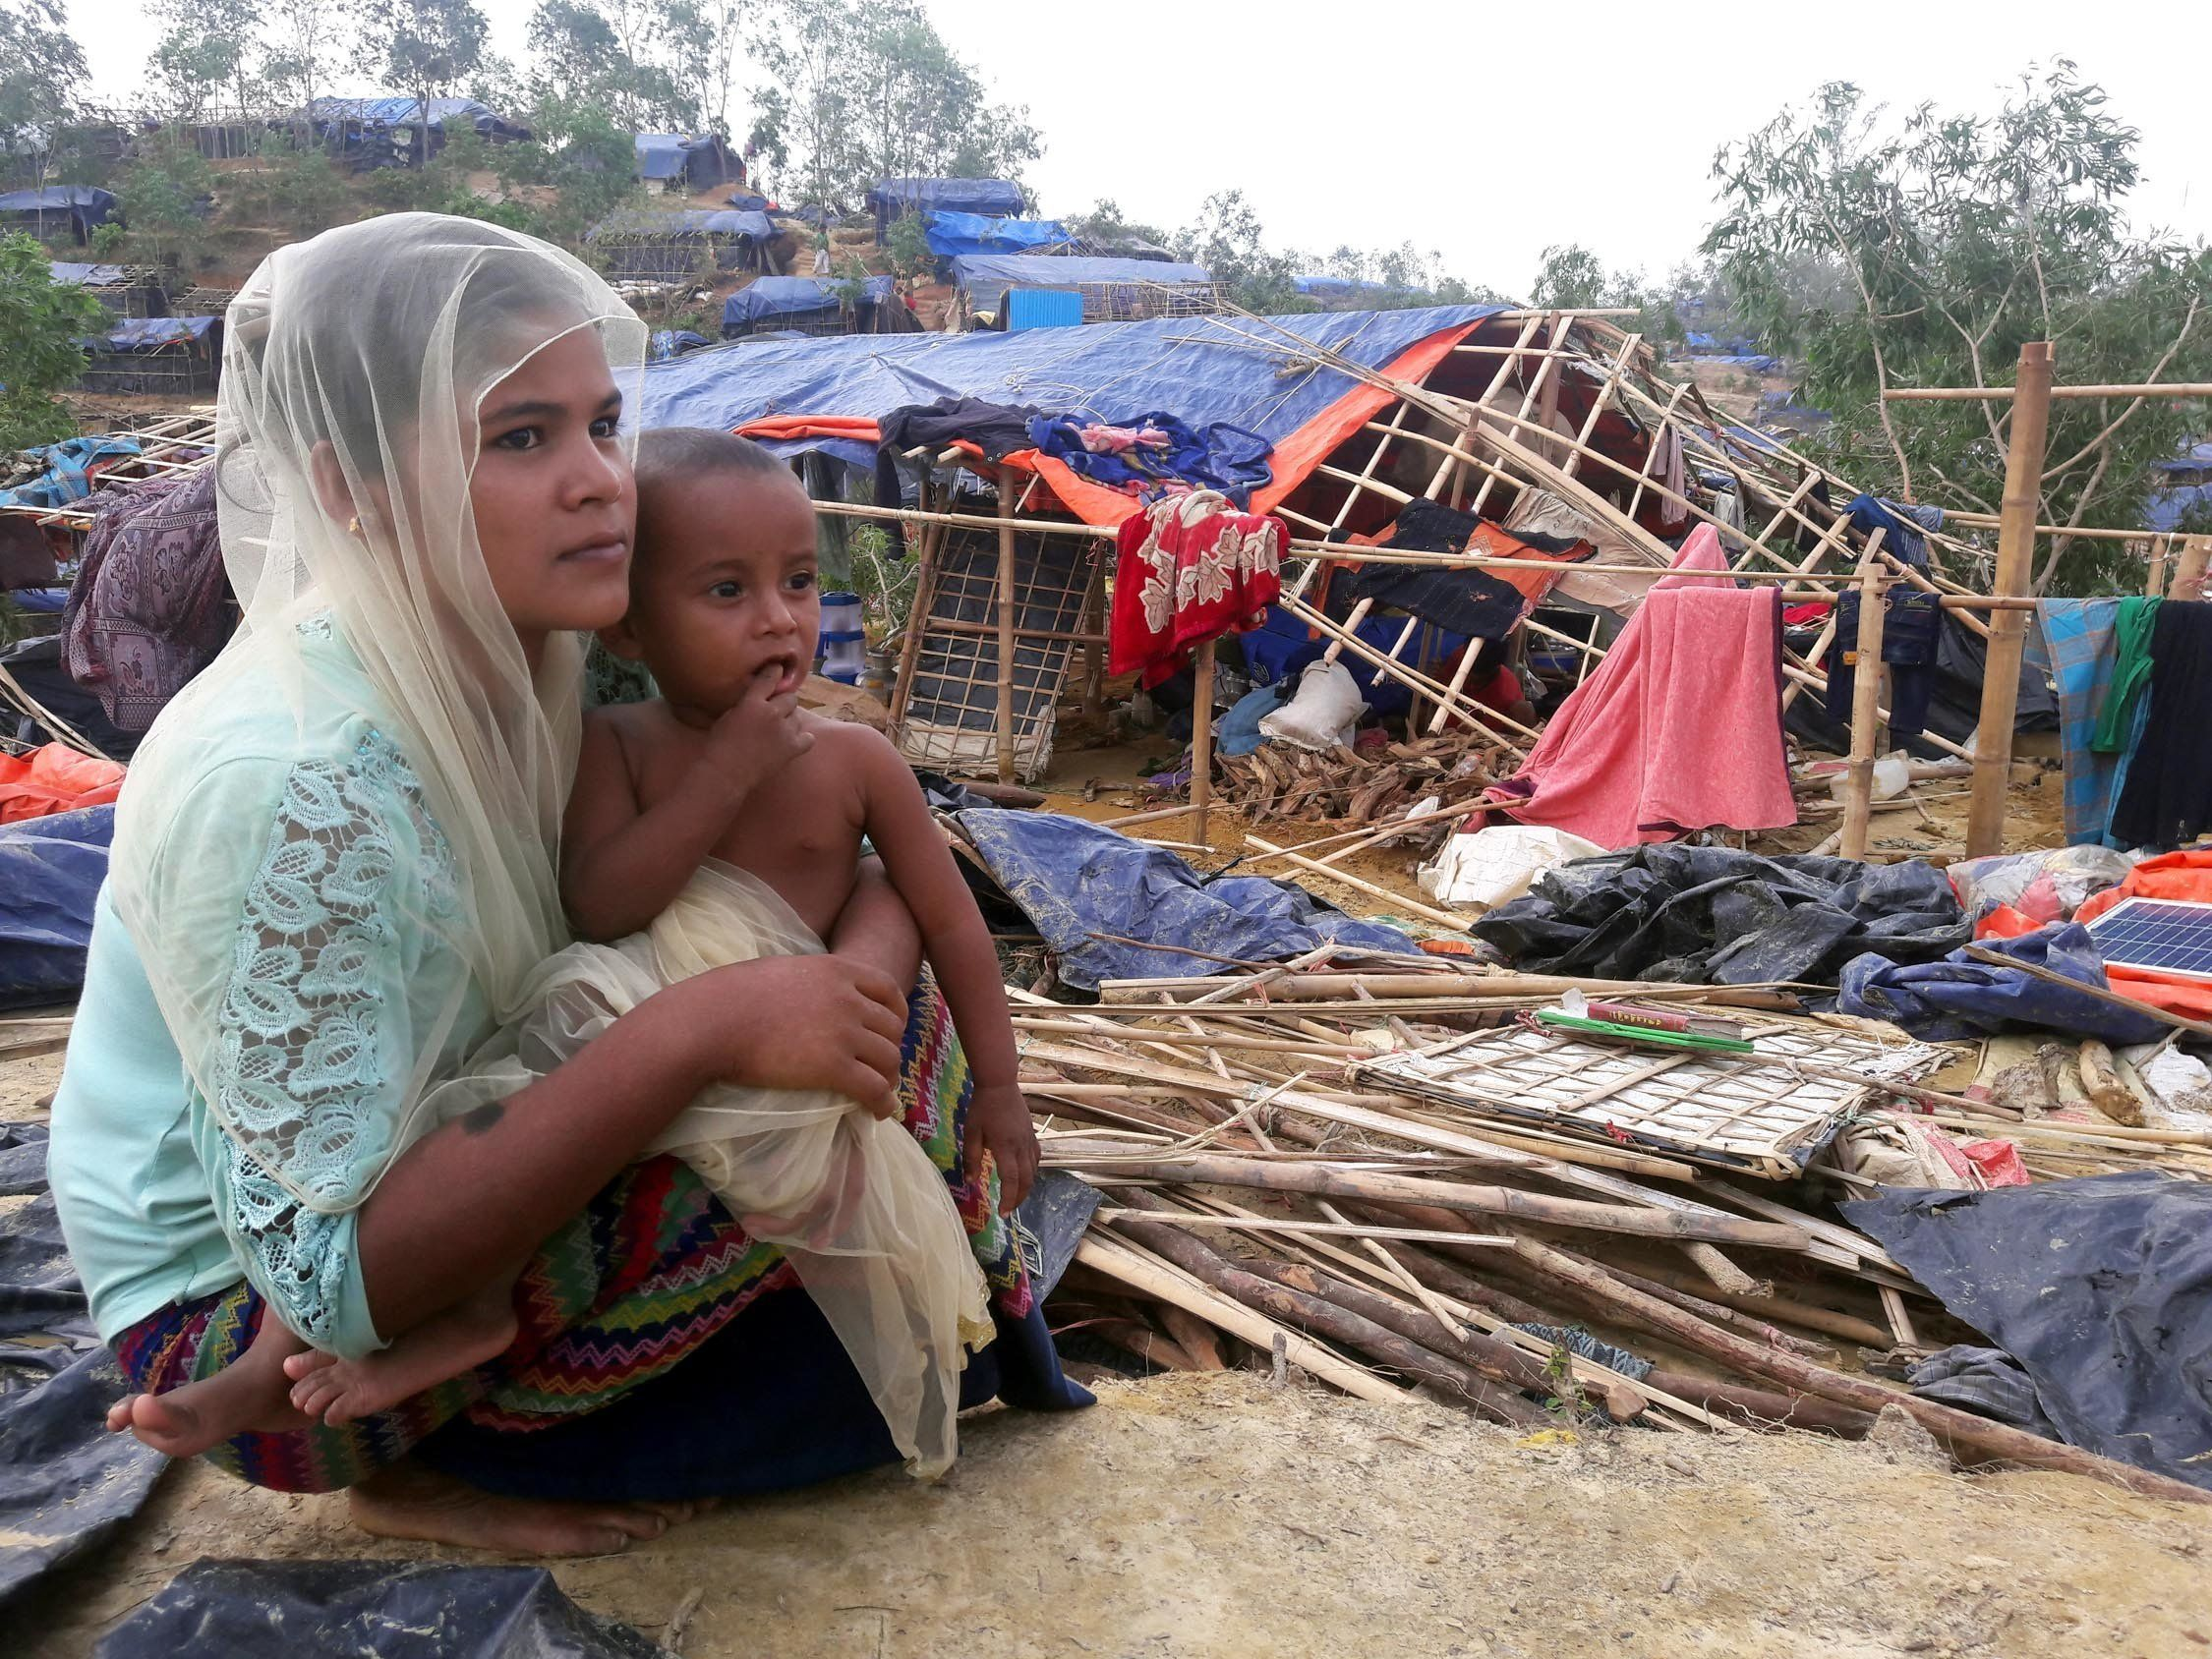 A Rohingya refugee sits near a house destroyed by Cyclone Mora in a camp in the Cox's Bazar district on May 31, 2017. Aid workers warned May 31 of an 'acute crisis' in Bangladesh after a cyclone destroyed thousands of homes and devastated camps housing Rohingya refugees, leaving many without food or shelter. / AFP PHOTO / STR        (Photo credit should read STR/AFP/Getty Images)